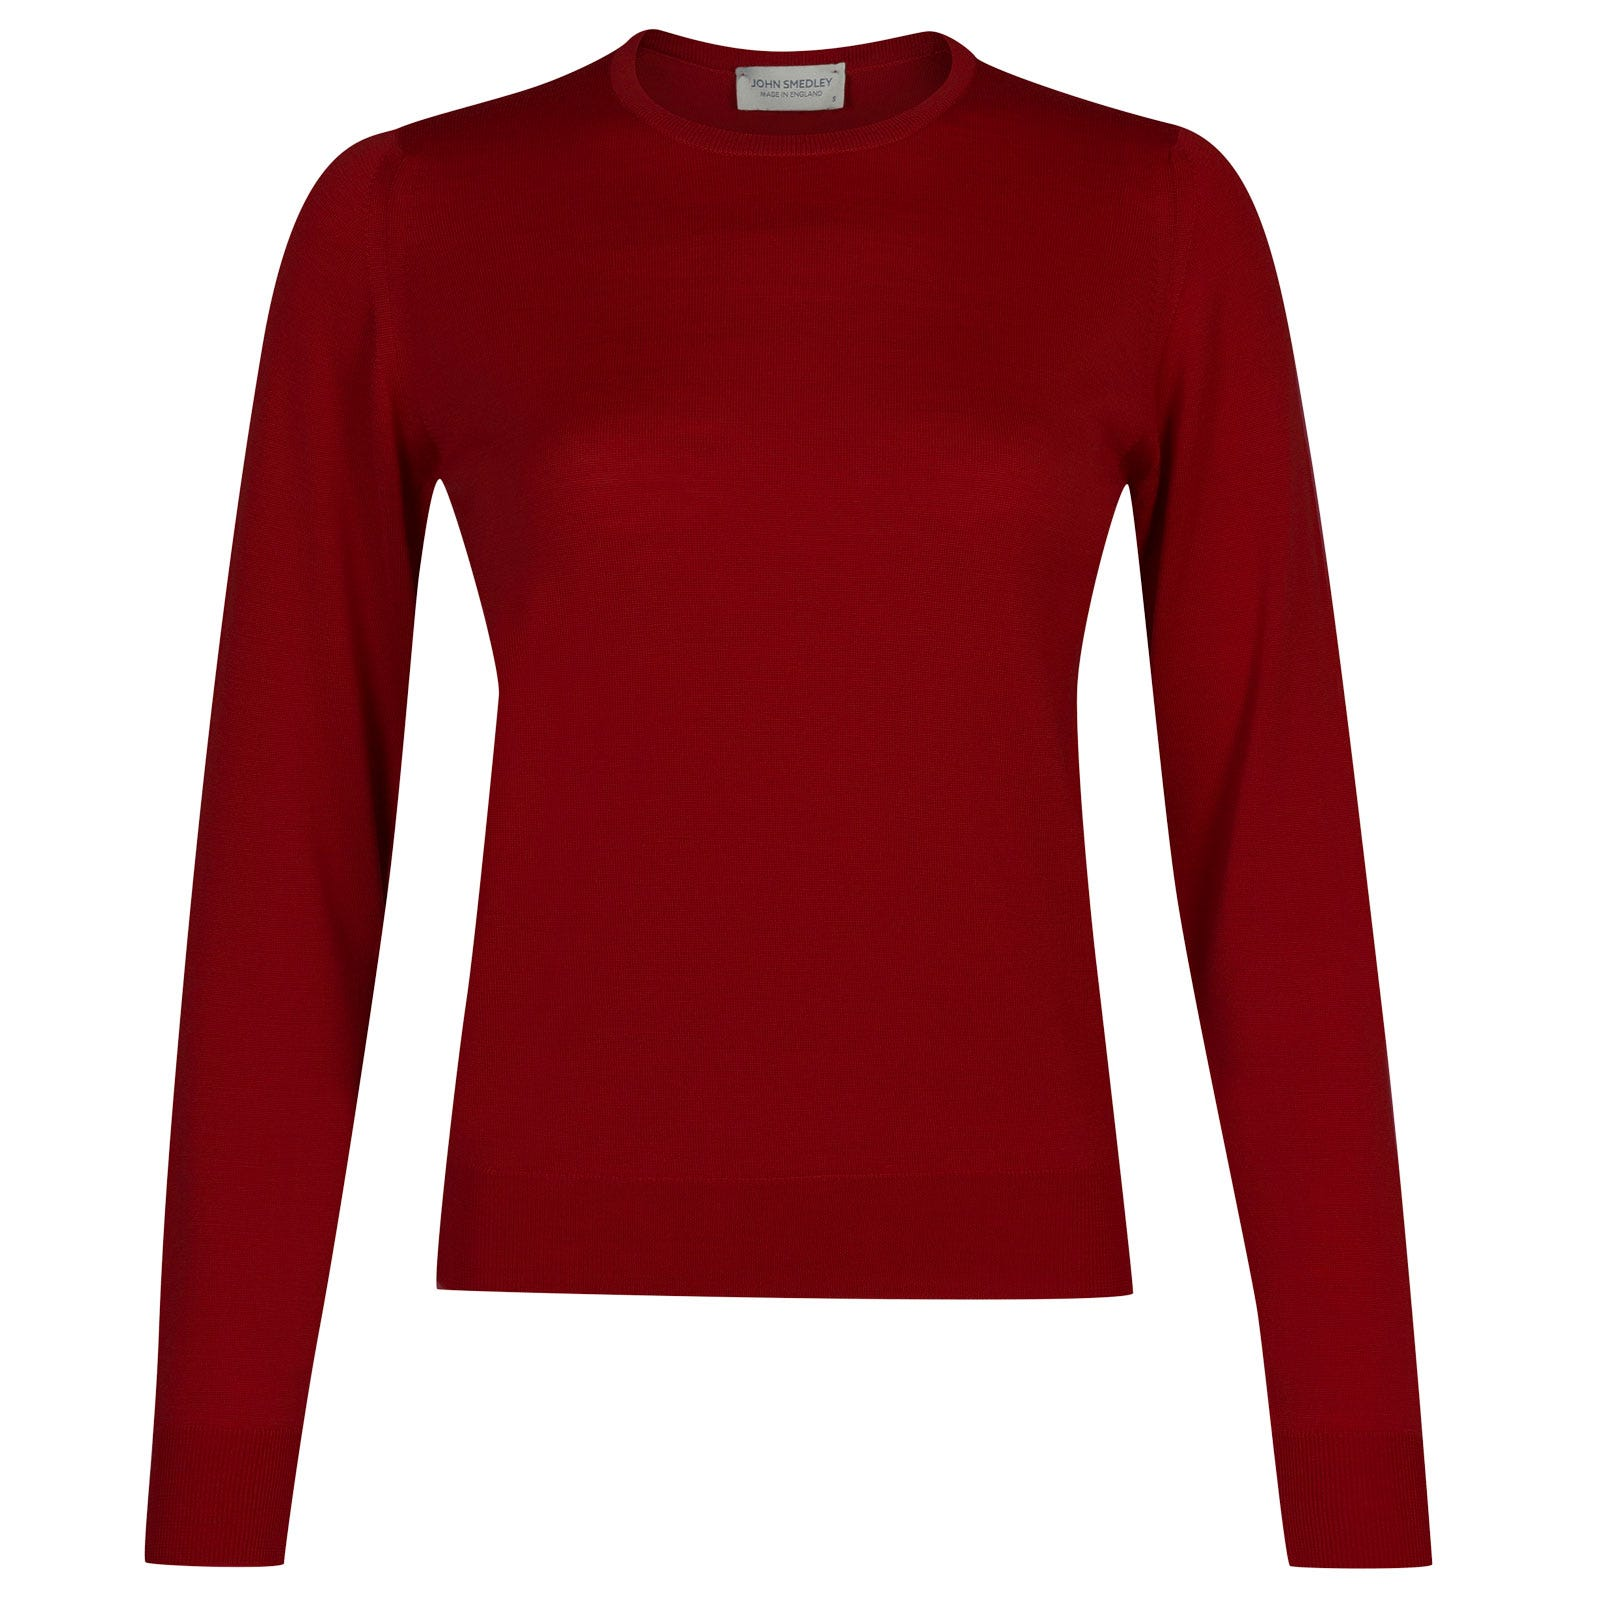 John Smedley venice Merino Wool Sweater in Crimson Forest-S